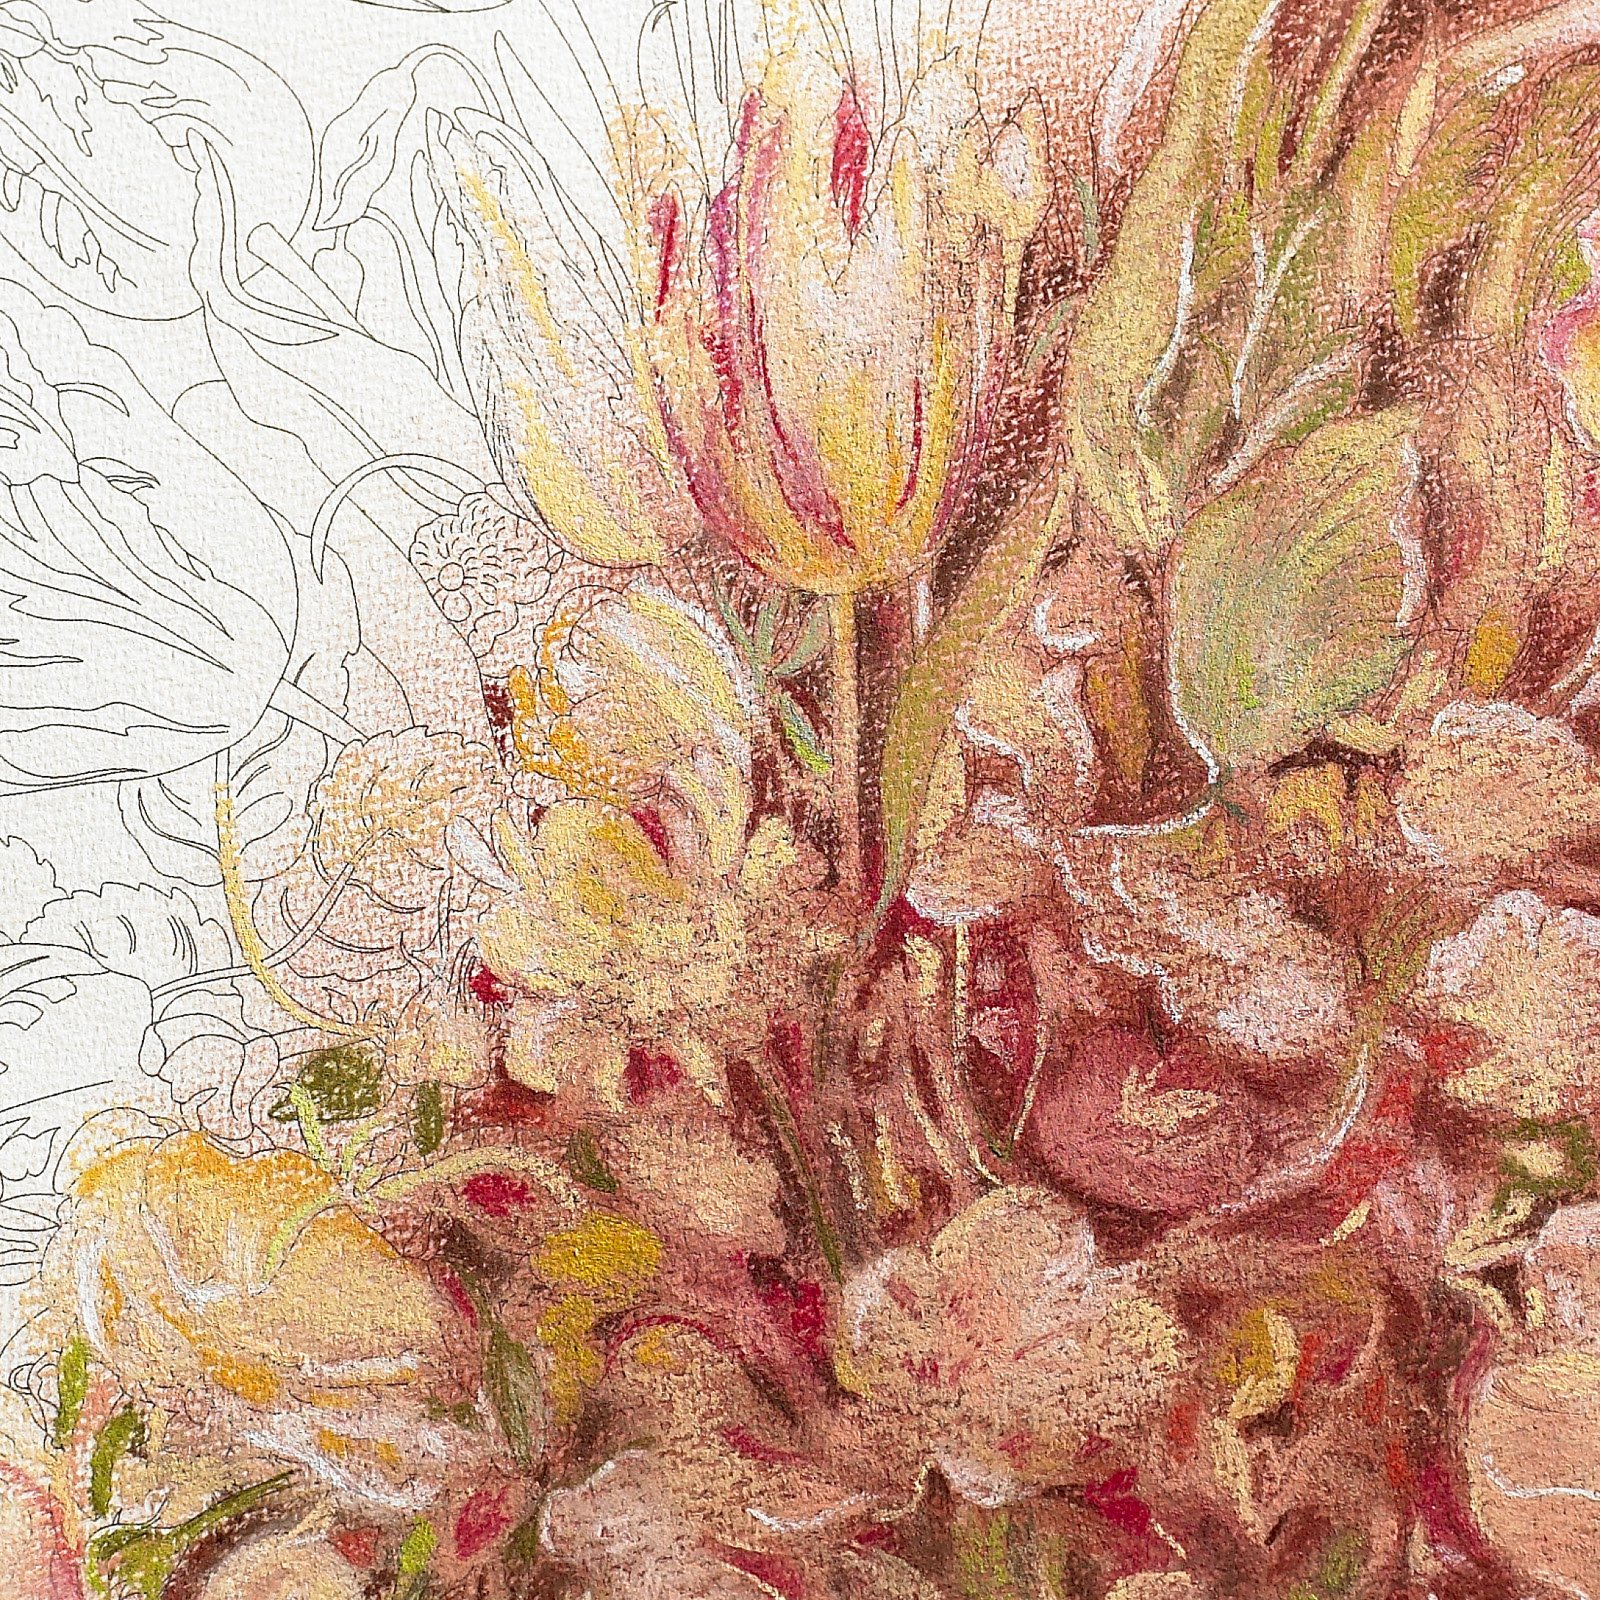 Coloring books for artists - Still Life Bouquets Artists Colouring Book Pepin Van Roojen 9789460098048 Amazon Com Books